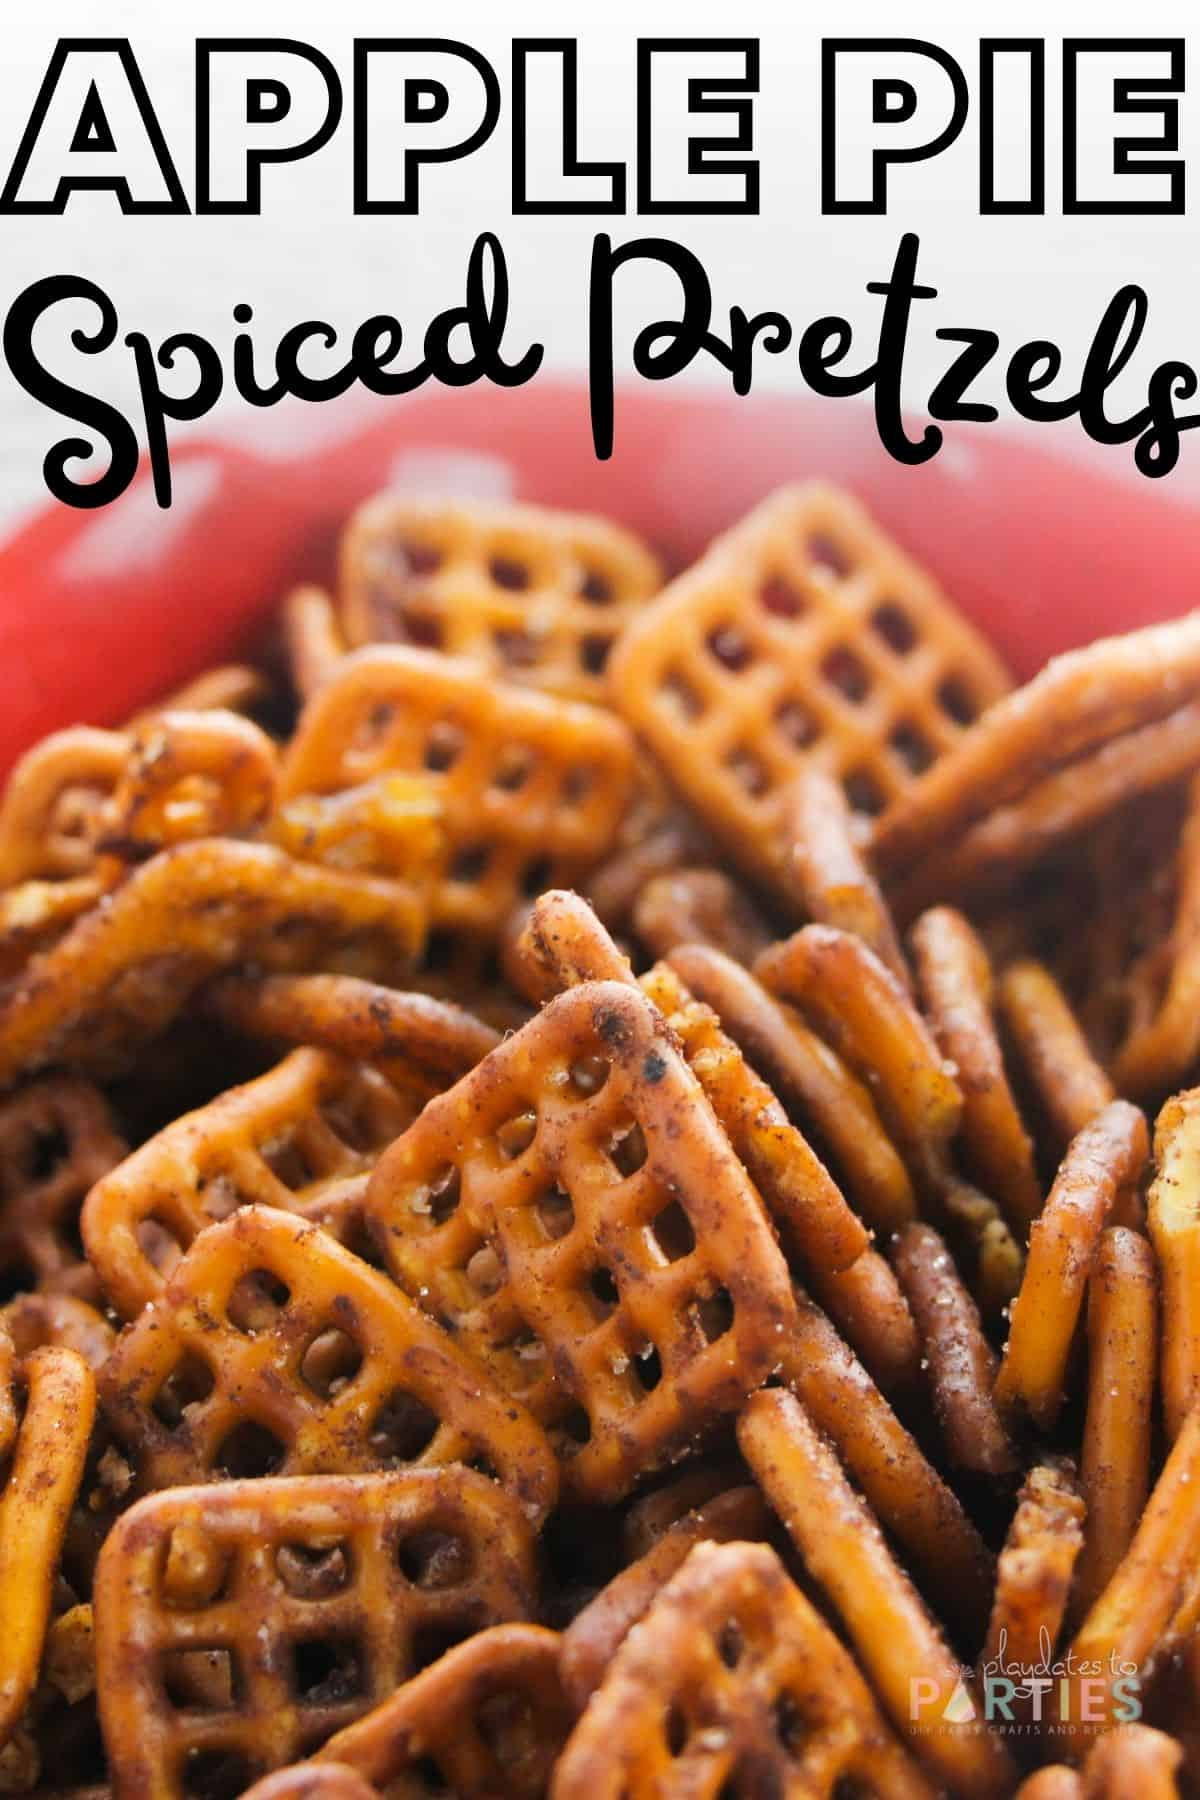 close up image of seasoned pretzels in a red bowl with text overlay apple pie spiced pretzels